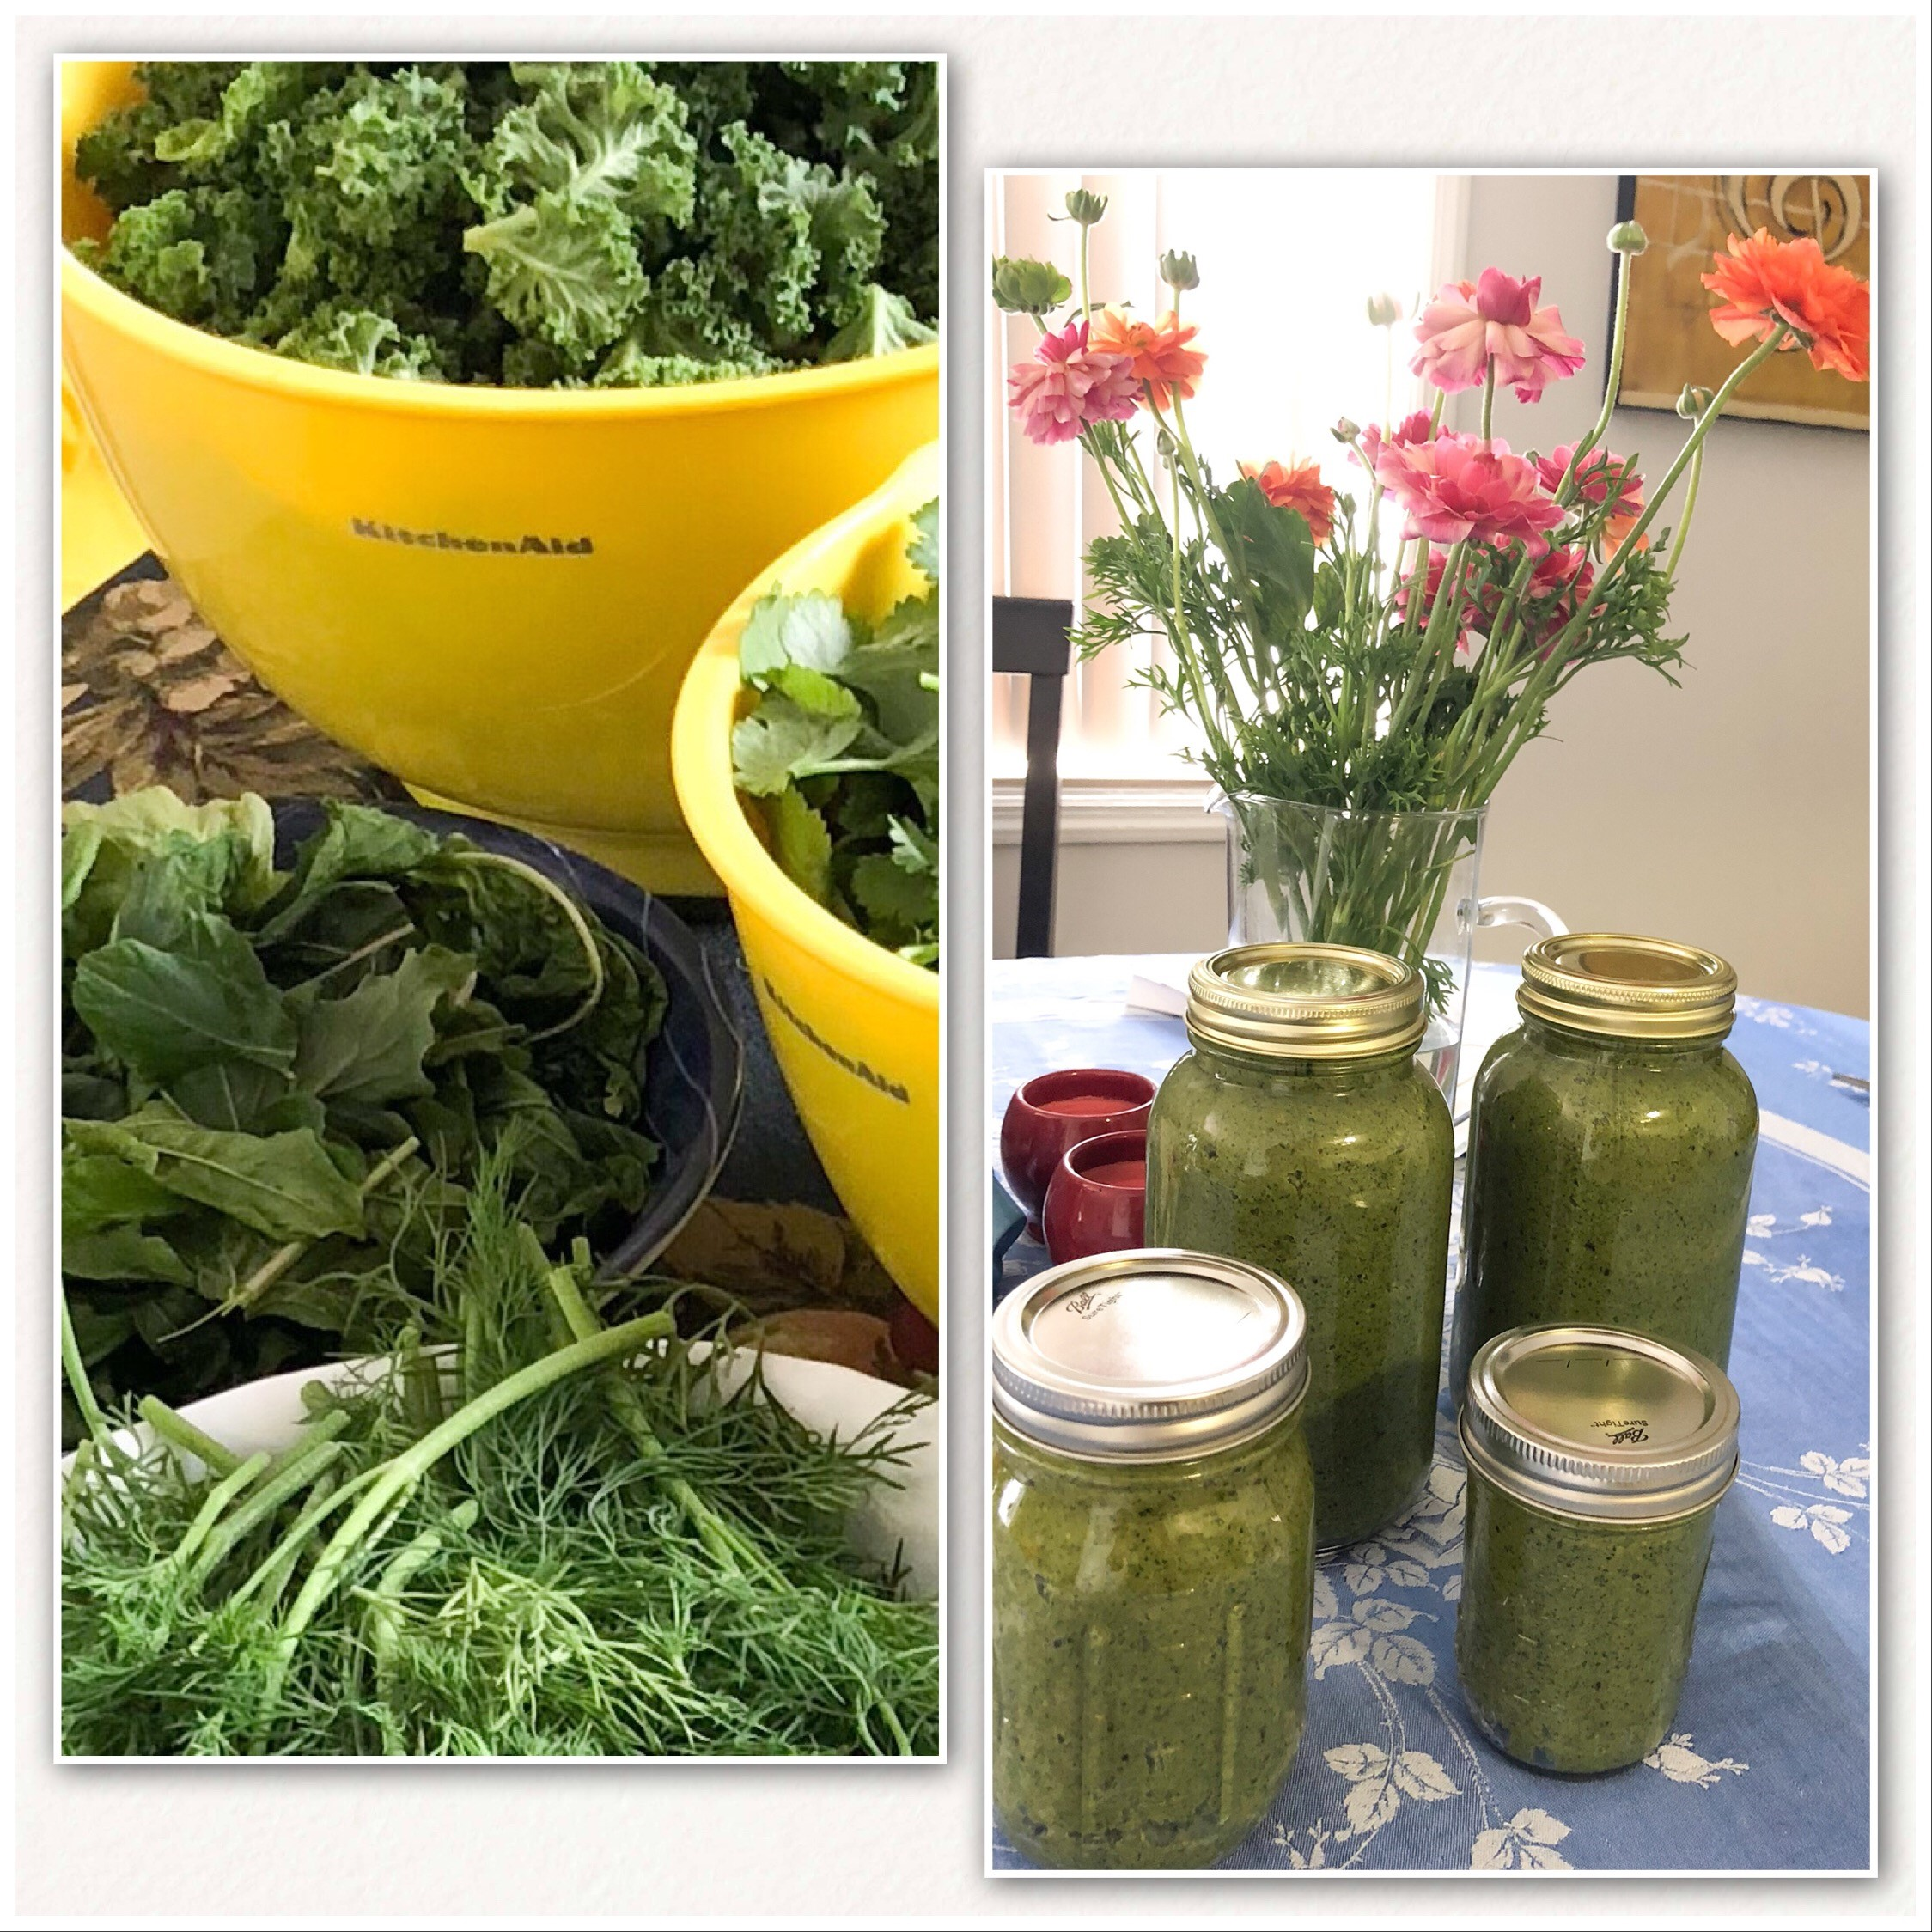 Dairy Free Pesto   INGREDIENTS 4 c Greens (mixed) ¾ c Raw Cashews ¼ c Olive Oil, plus more to desired consistency  ¼ c Nutritional Yeast ½ tsp Garlic Infused Sea Salt, plus more to taste ½ tsp Pepper 1 tbsp Lemon Juice Optional: 1 tsp Red Pepper Flakes  Optional: 1 tsp Hemp Hearts  INSTRUCTIONS Add all ingredients to food processor or high powered blender.  Pulse until mixed. Stop and scrape sides as needed.  Perfect for adding to sauces, dressing, breads, sandwiches, pastas, etc. Enjoy!